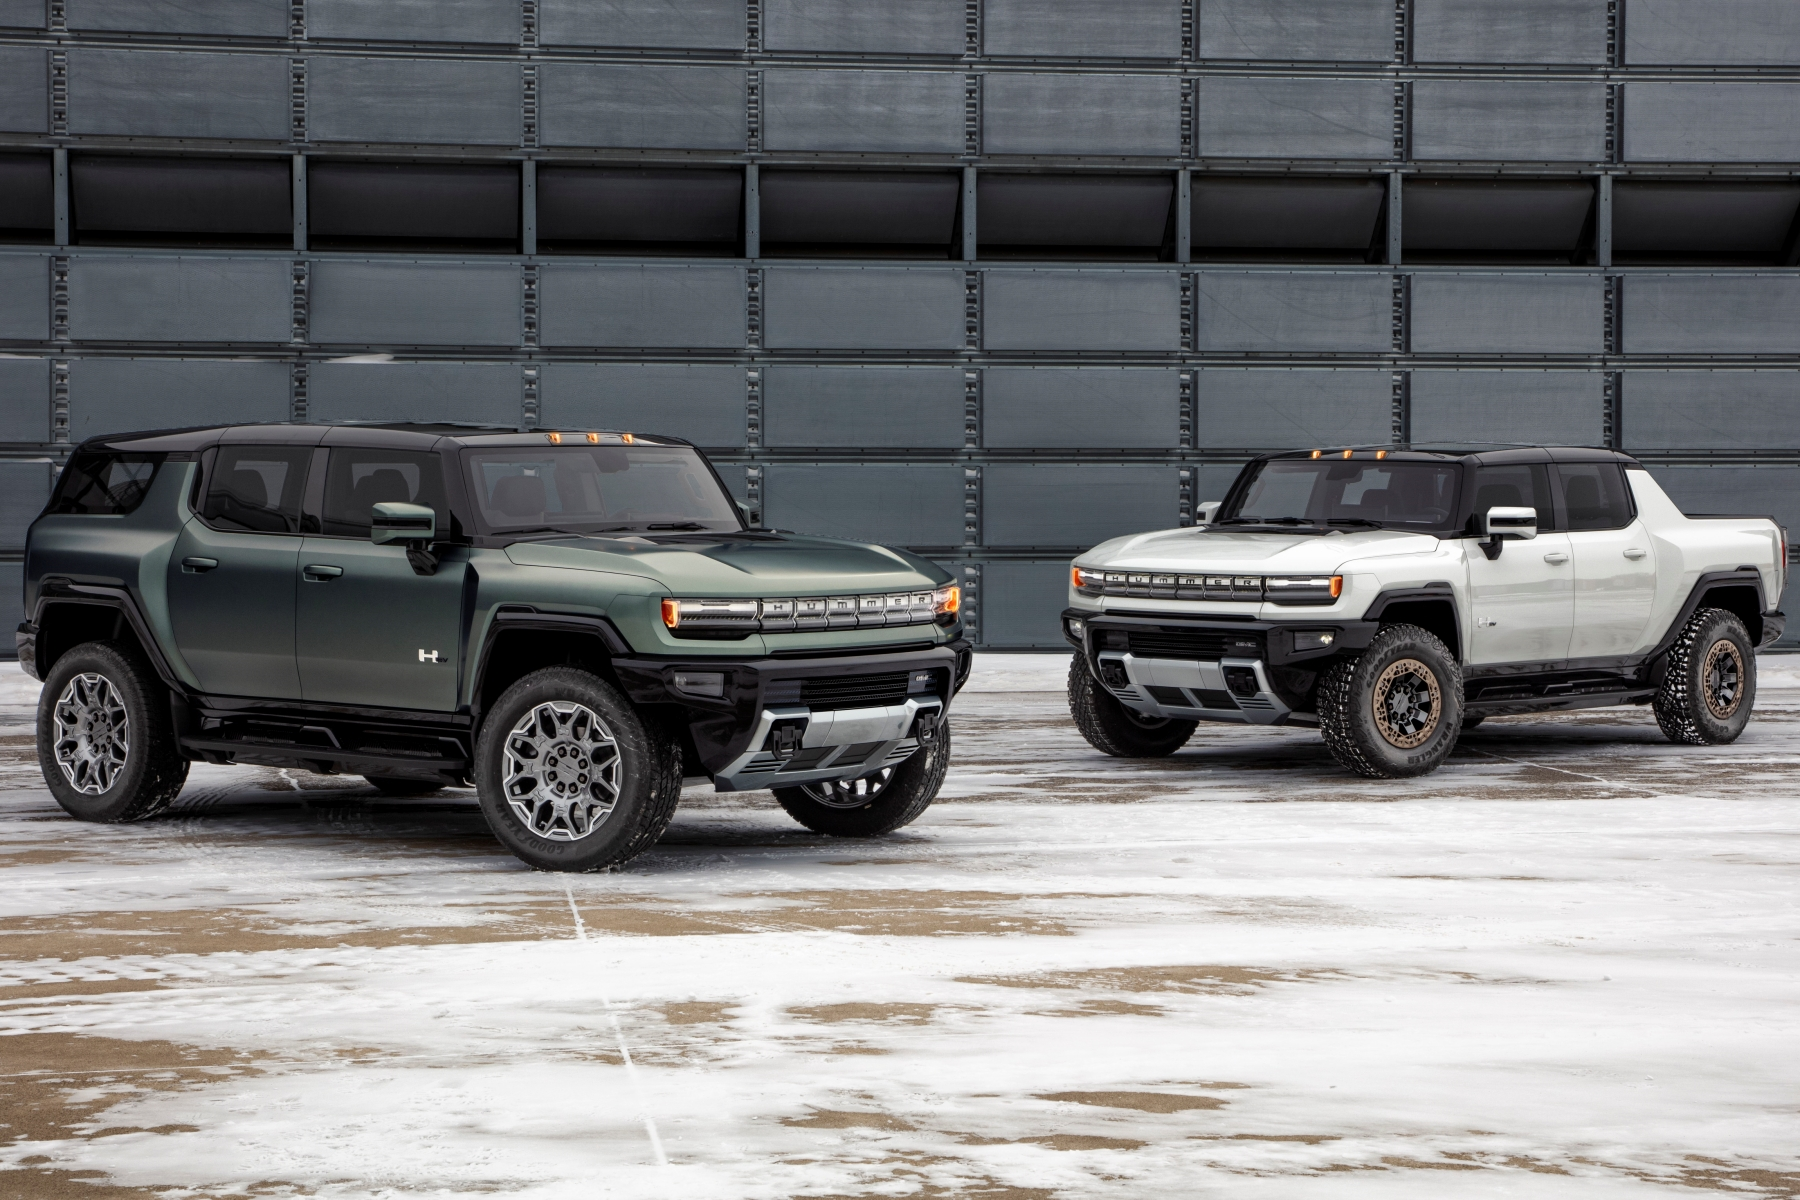 The GMC HUMMER EV SUV completes the HUMMER EV family and features a 126.7-inch wheelbase for tight proportions and a maneuverable body, providing remarkable on- and off-road capability.